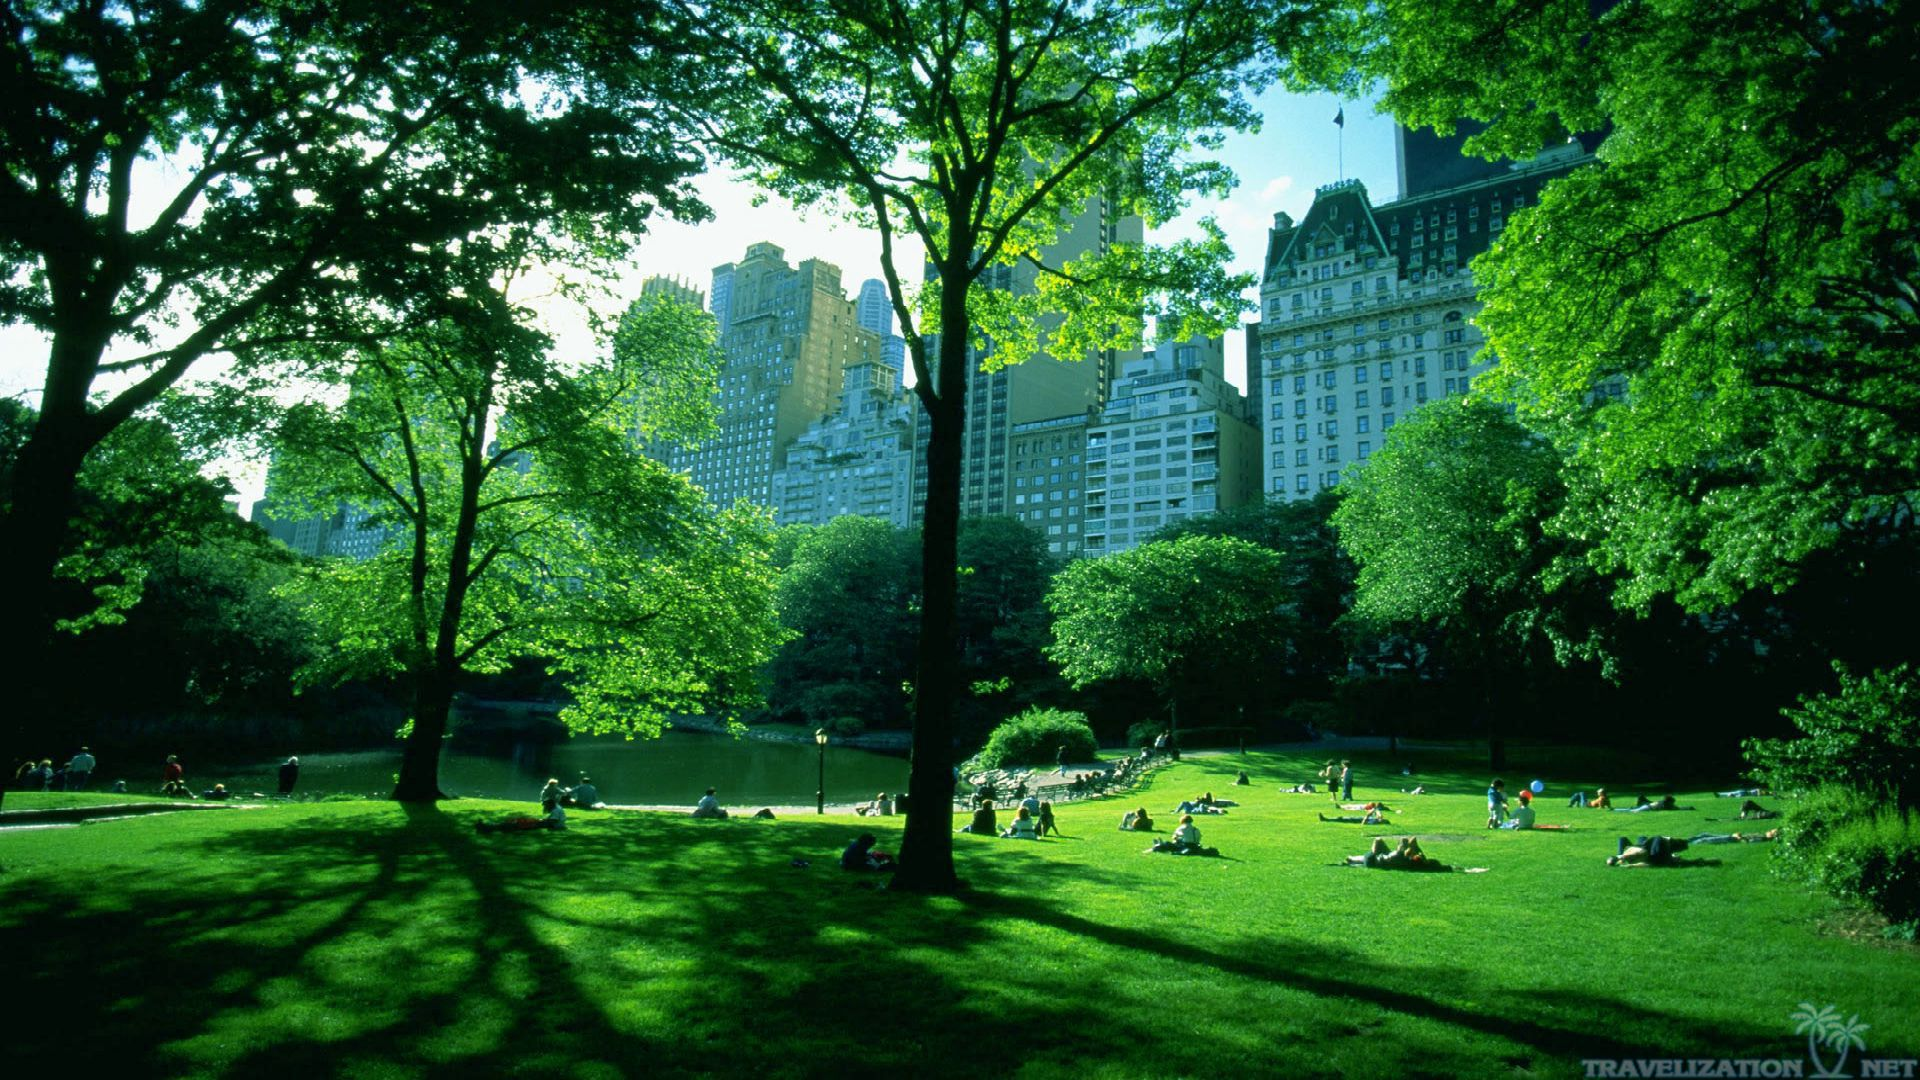 Central park wallpaper wallpapersafari for Central park wallpaper